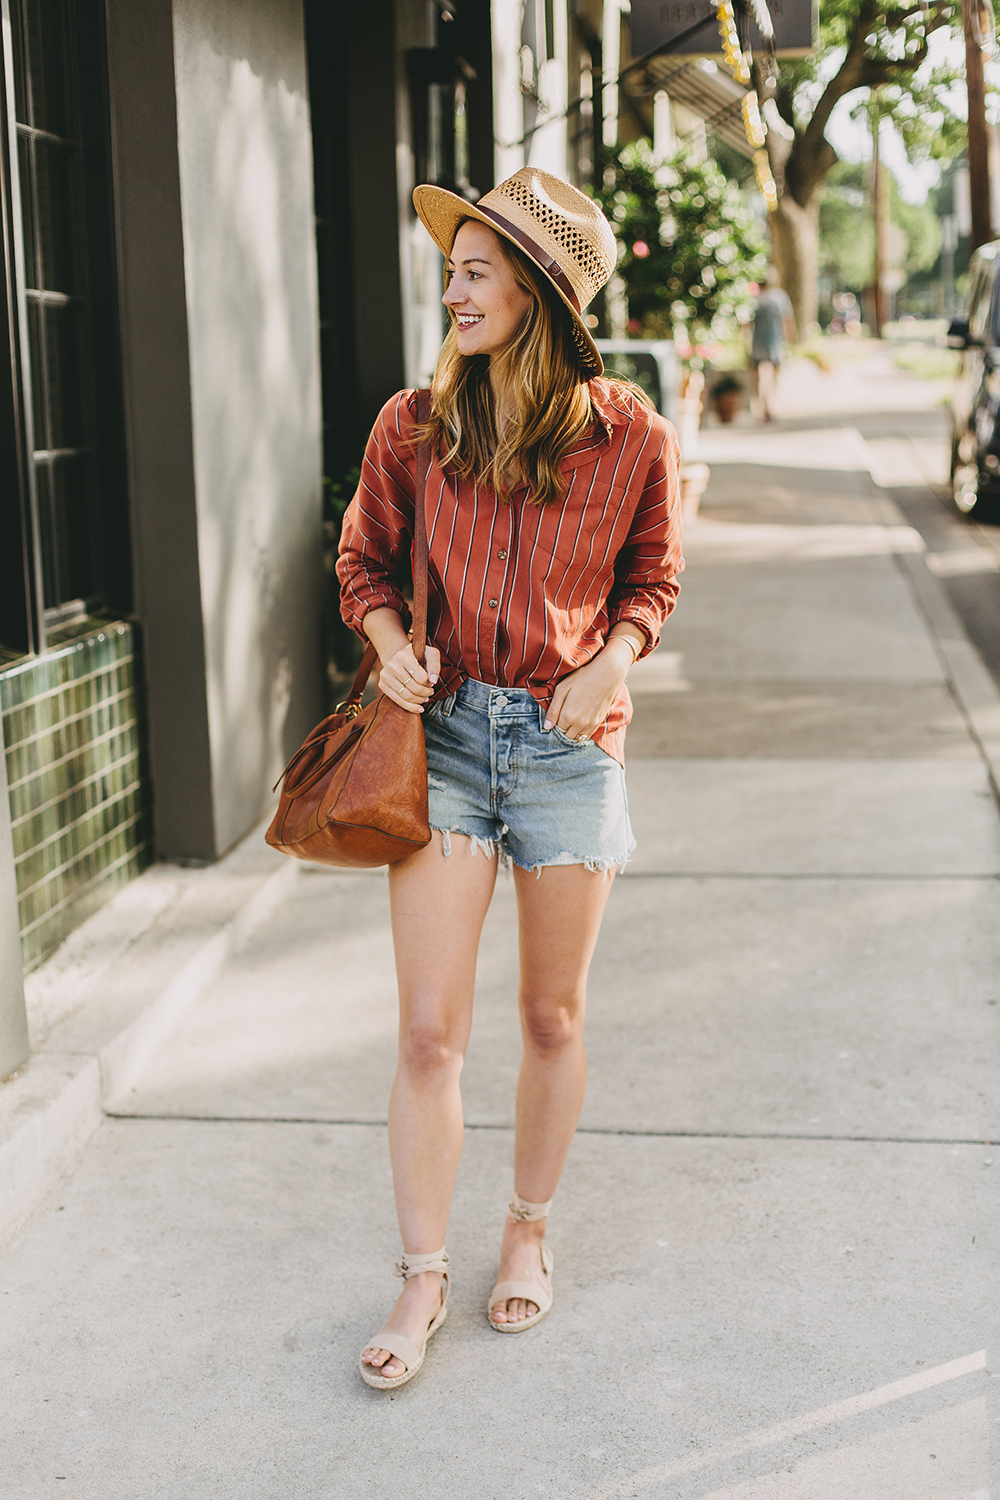 livvyland-blog-olivia-watson-austin-texas-fashion-style-blogger-urban-outfitters-levis-denim-wedgie-short-out-the-blue-brixton-straw-case-fedora-1